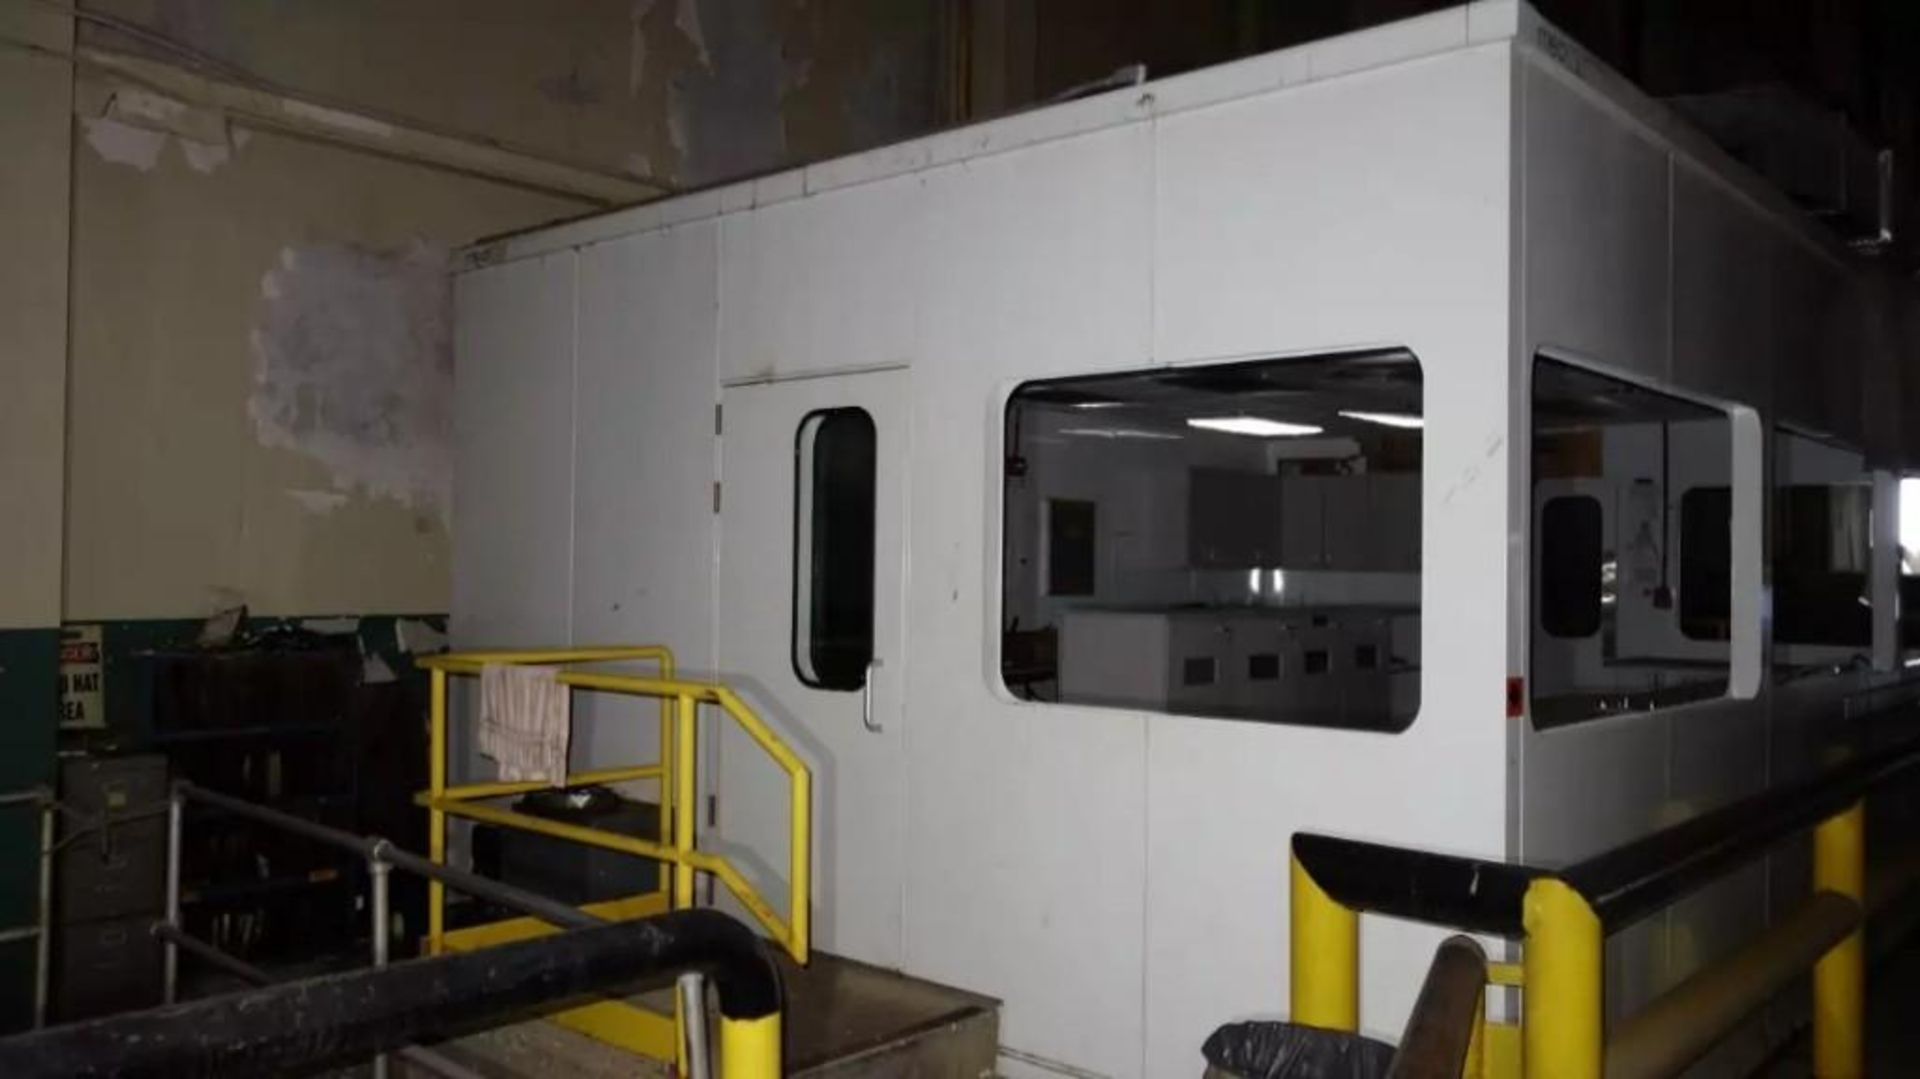 PREFABRICATED MODULAR OFFICE MECART COMMAND CENTER OFFICE WITH CONTENTS, 25X18FT (MISSING WINDOWS) - Image 4 of 11